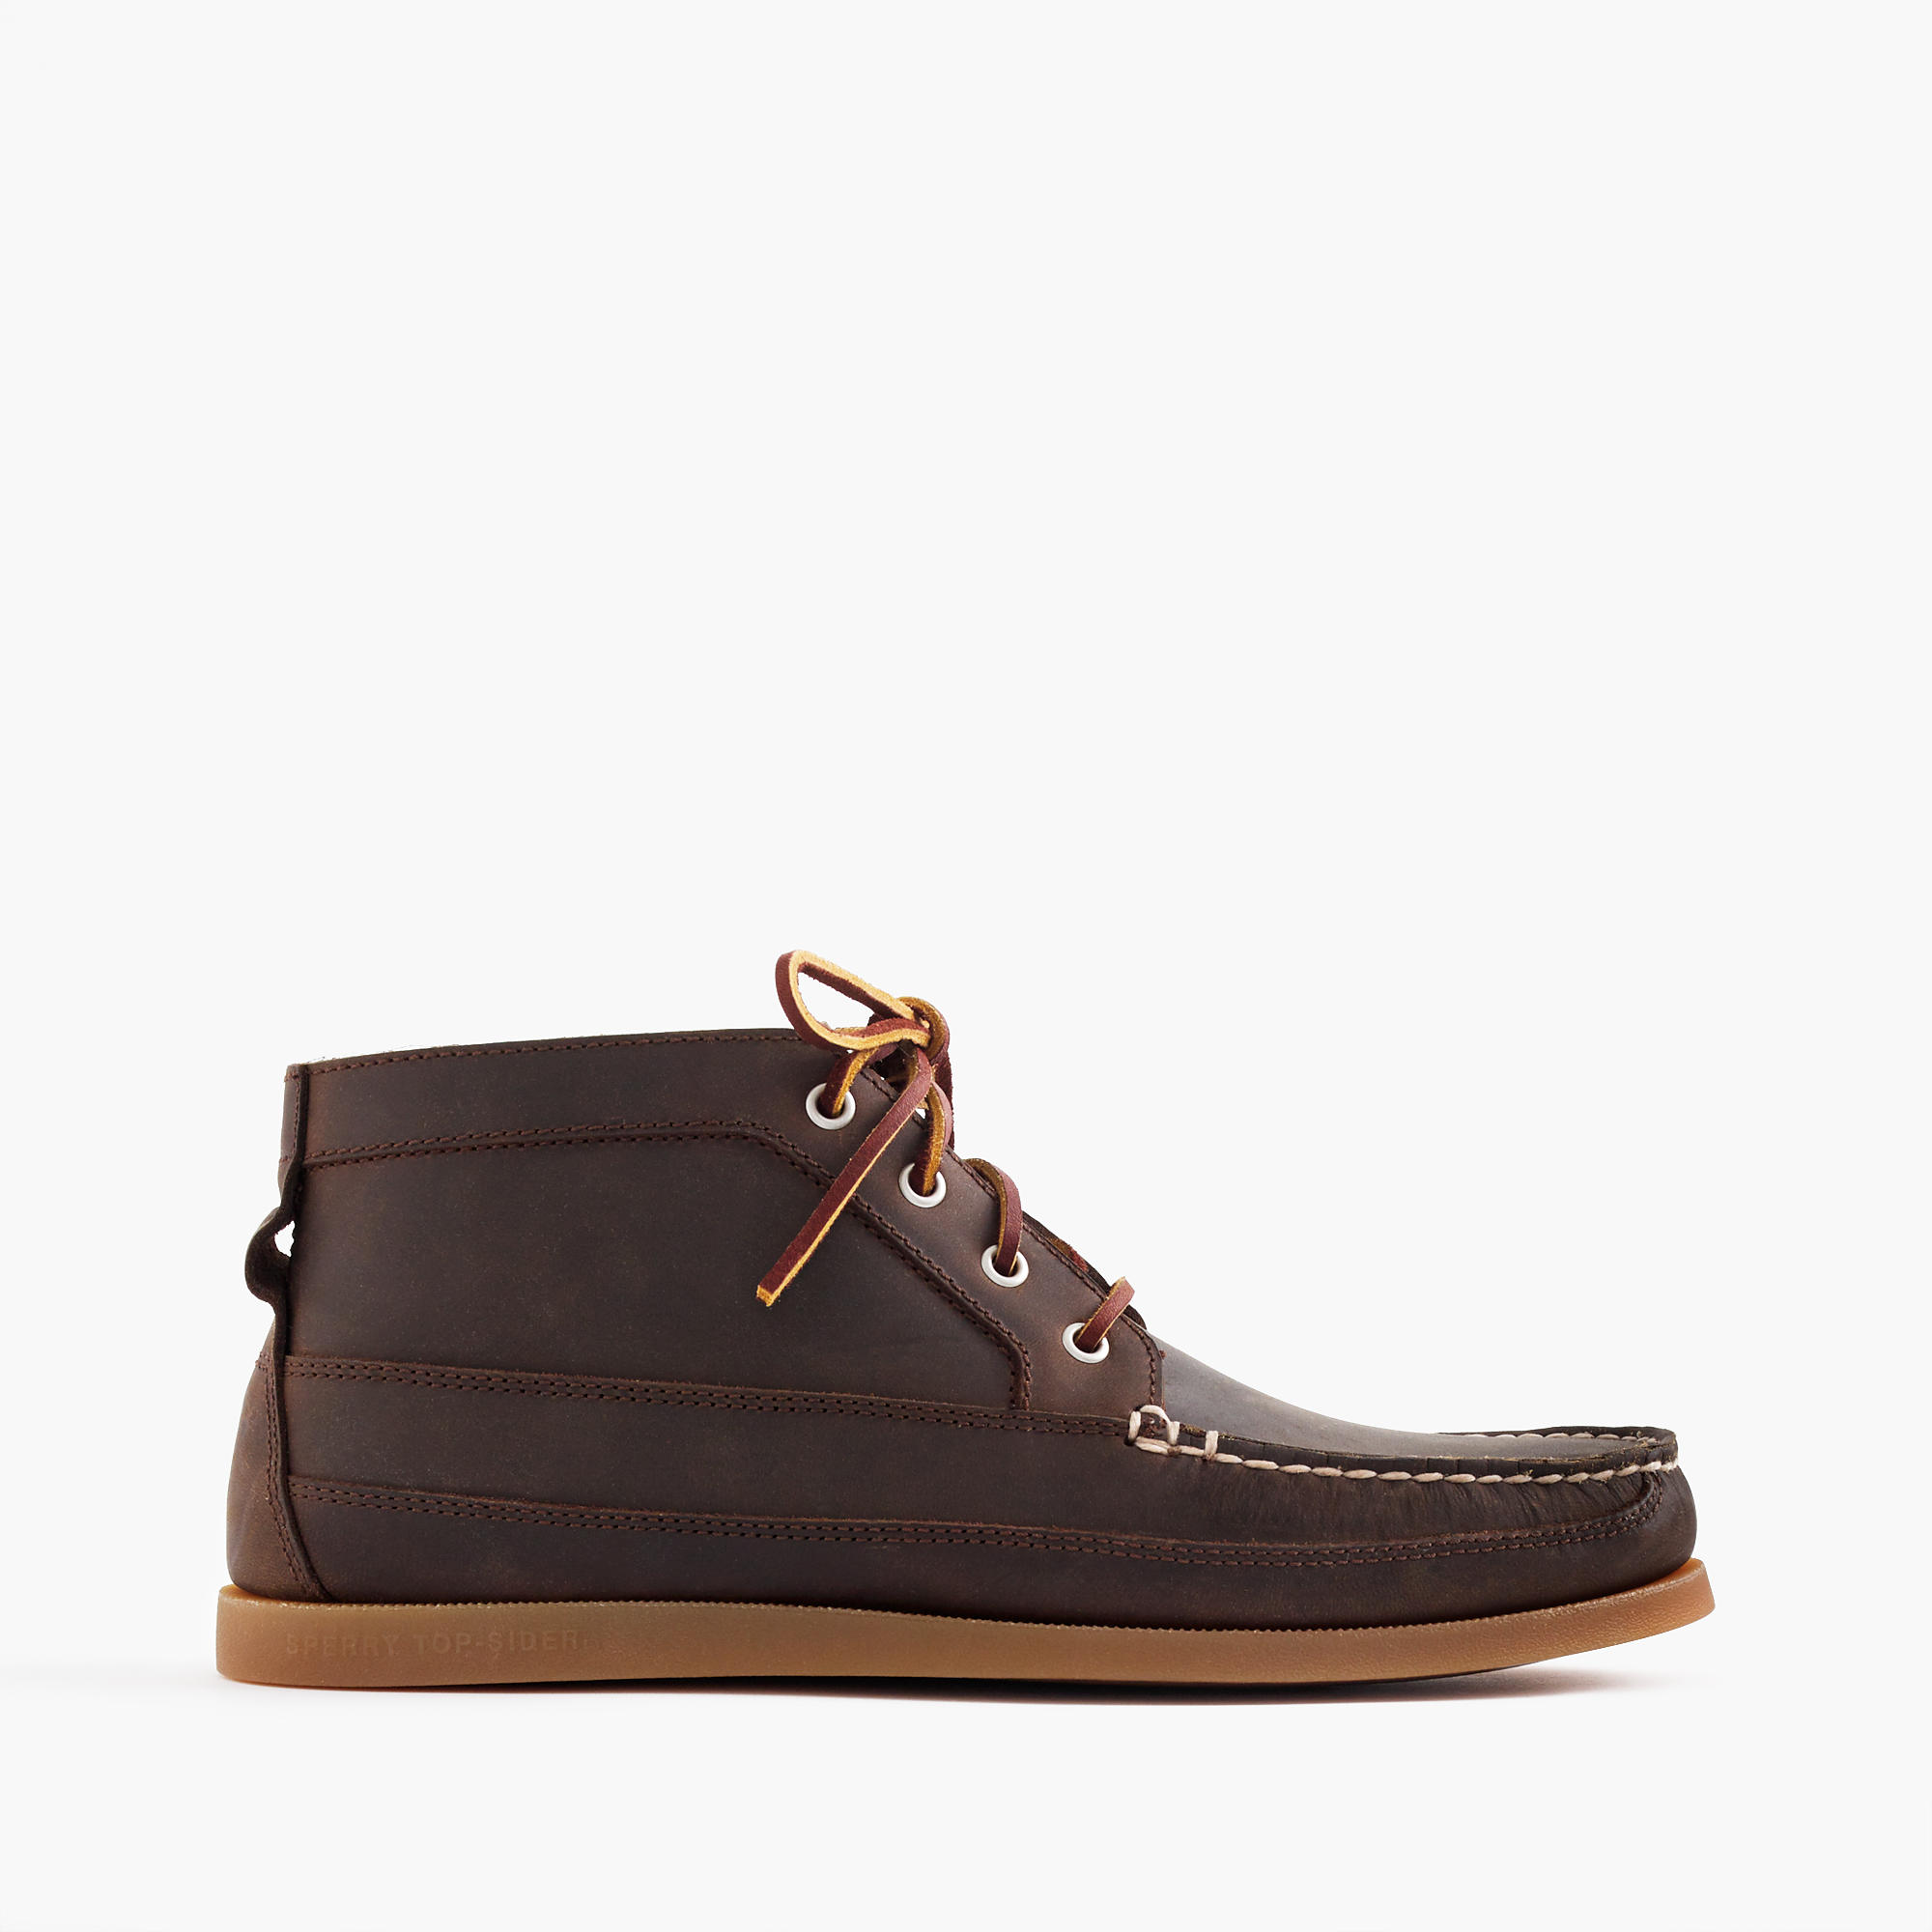 Sperry For J.Crew Chukka Boots : Men's Boots | J.Crew